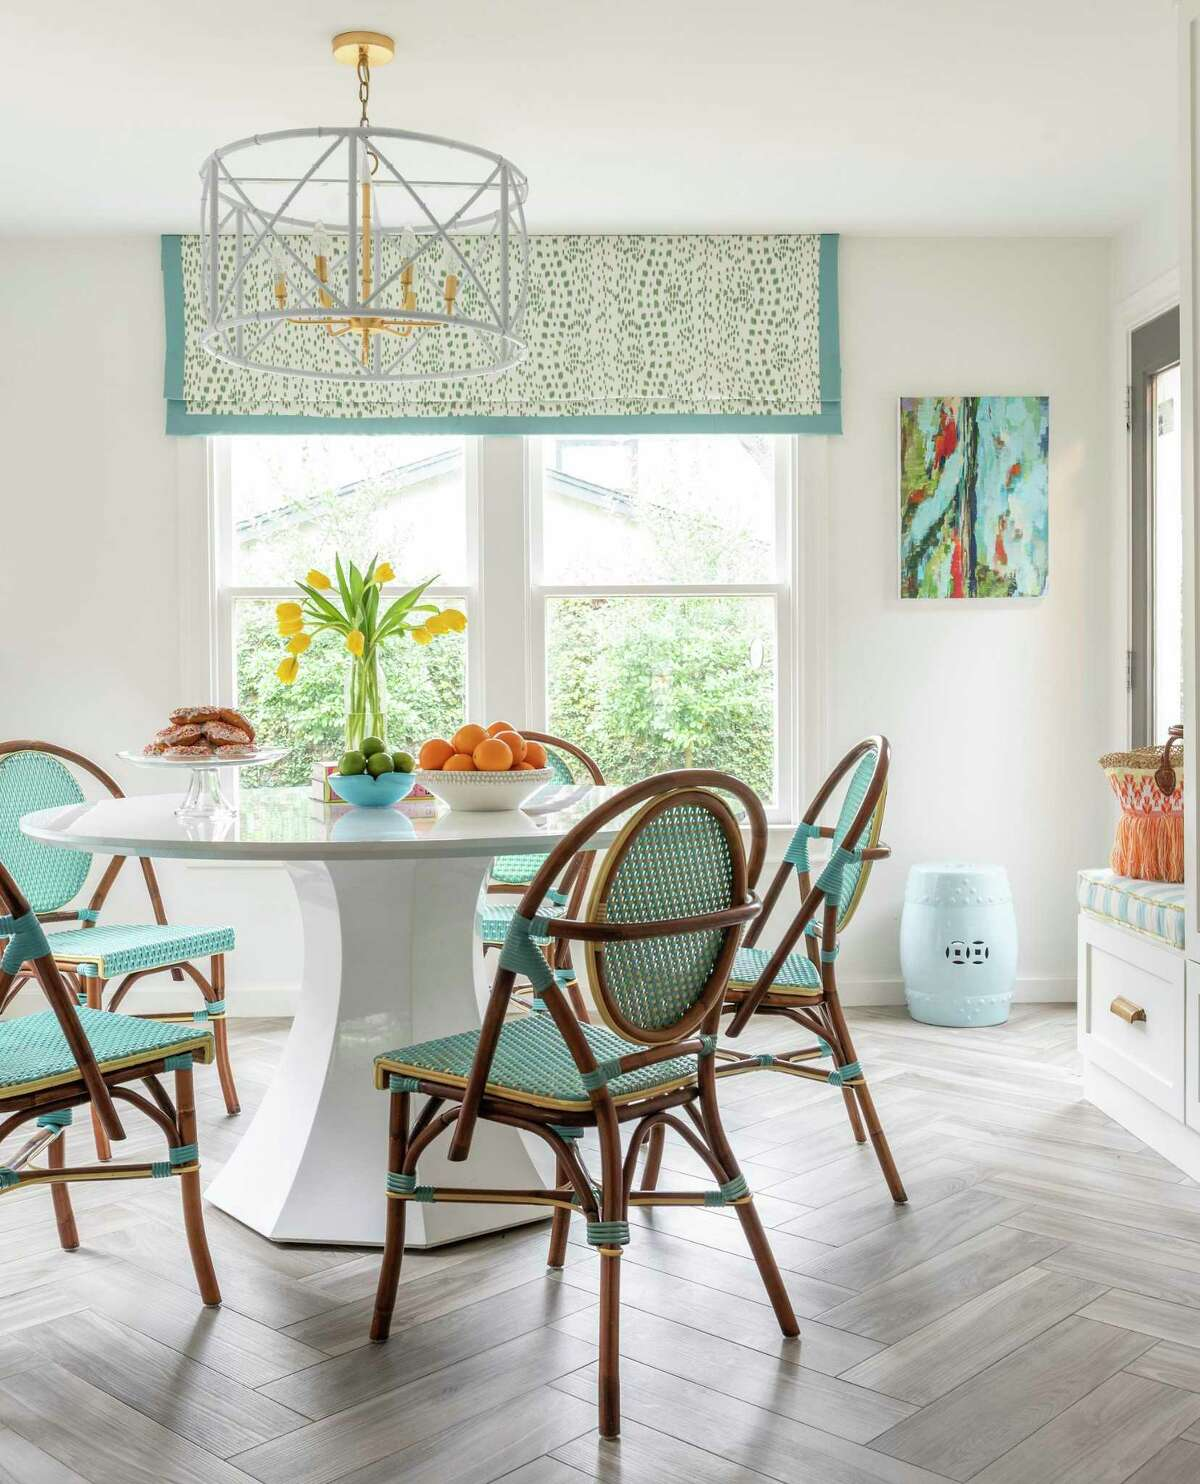 Turquoise and white bistro chairs surround a round white table in the morning room, or breakfast room.